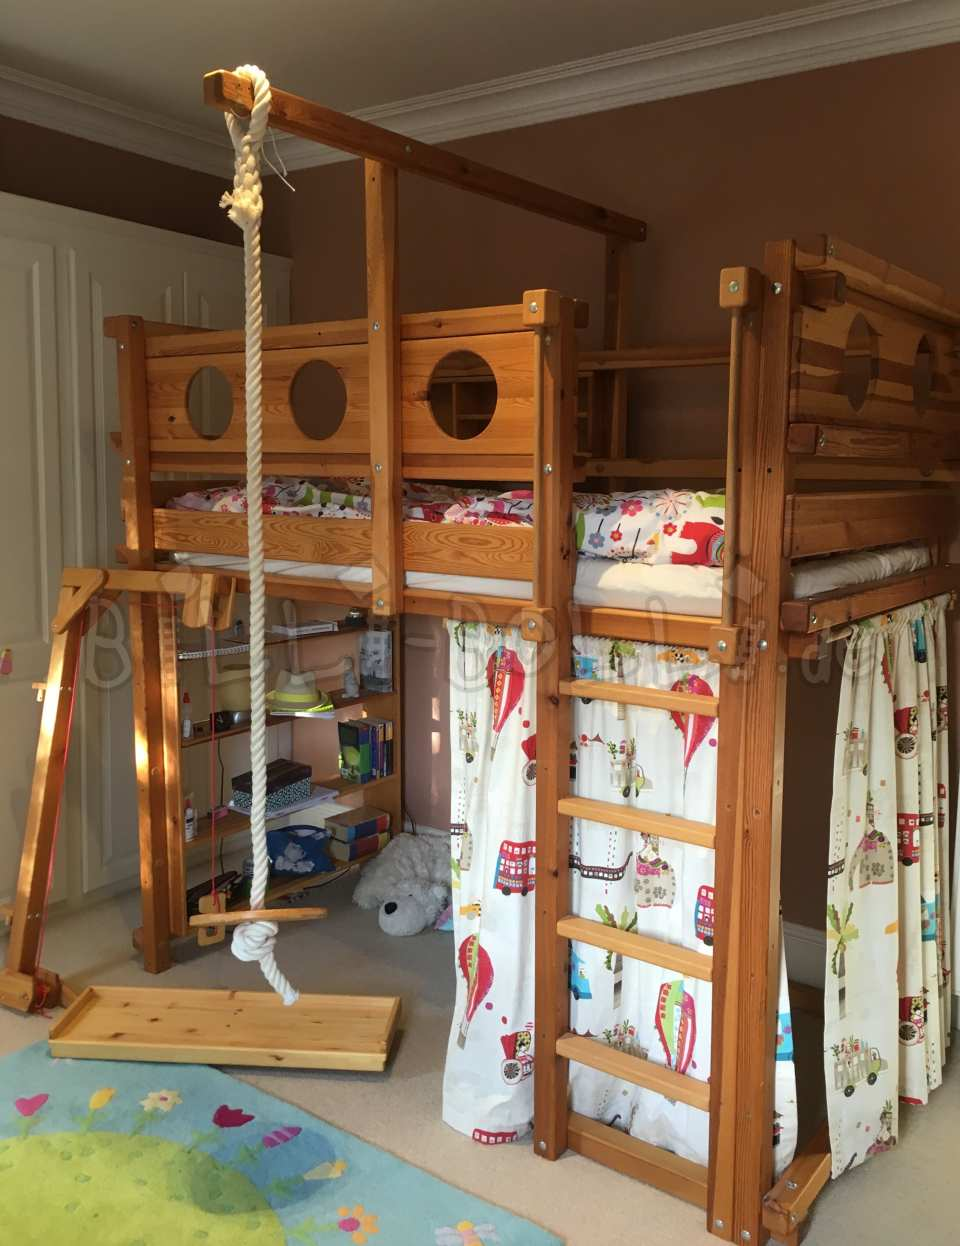 Collating high bed, 90 x 190 cm, pine oil-waxed (second hand loft bed)